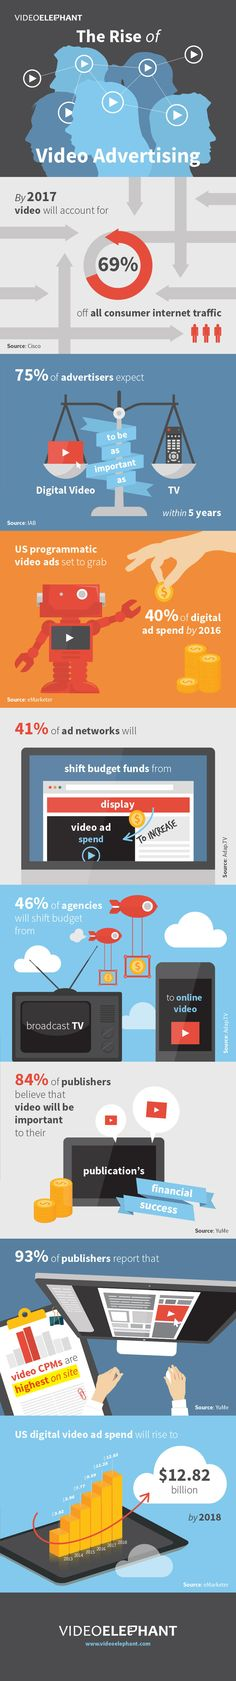 The-Rise-of-Video-Advertising.jpg (800×5700)